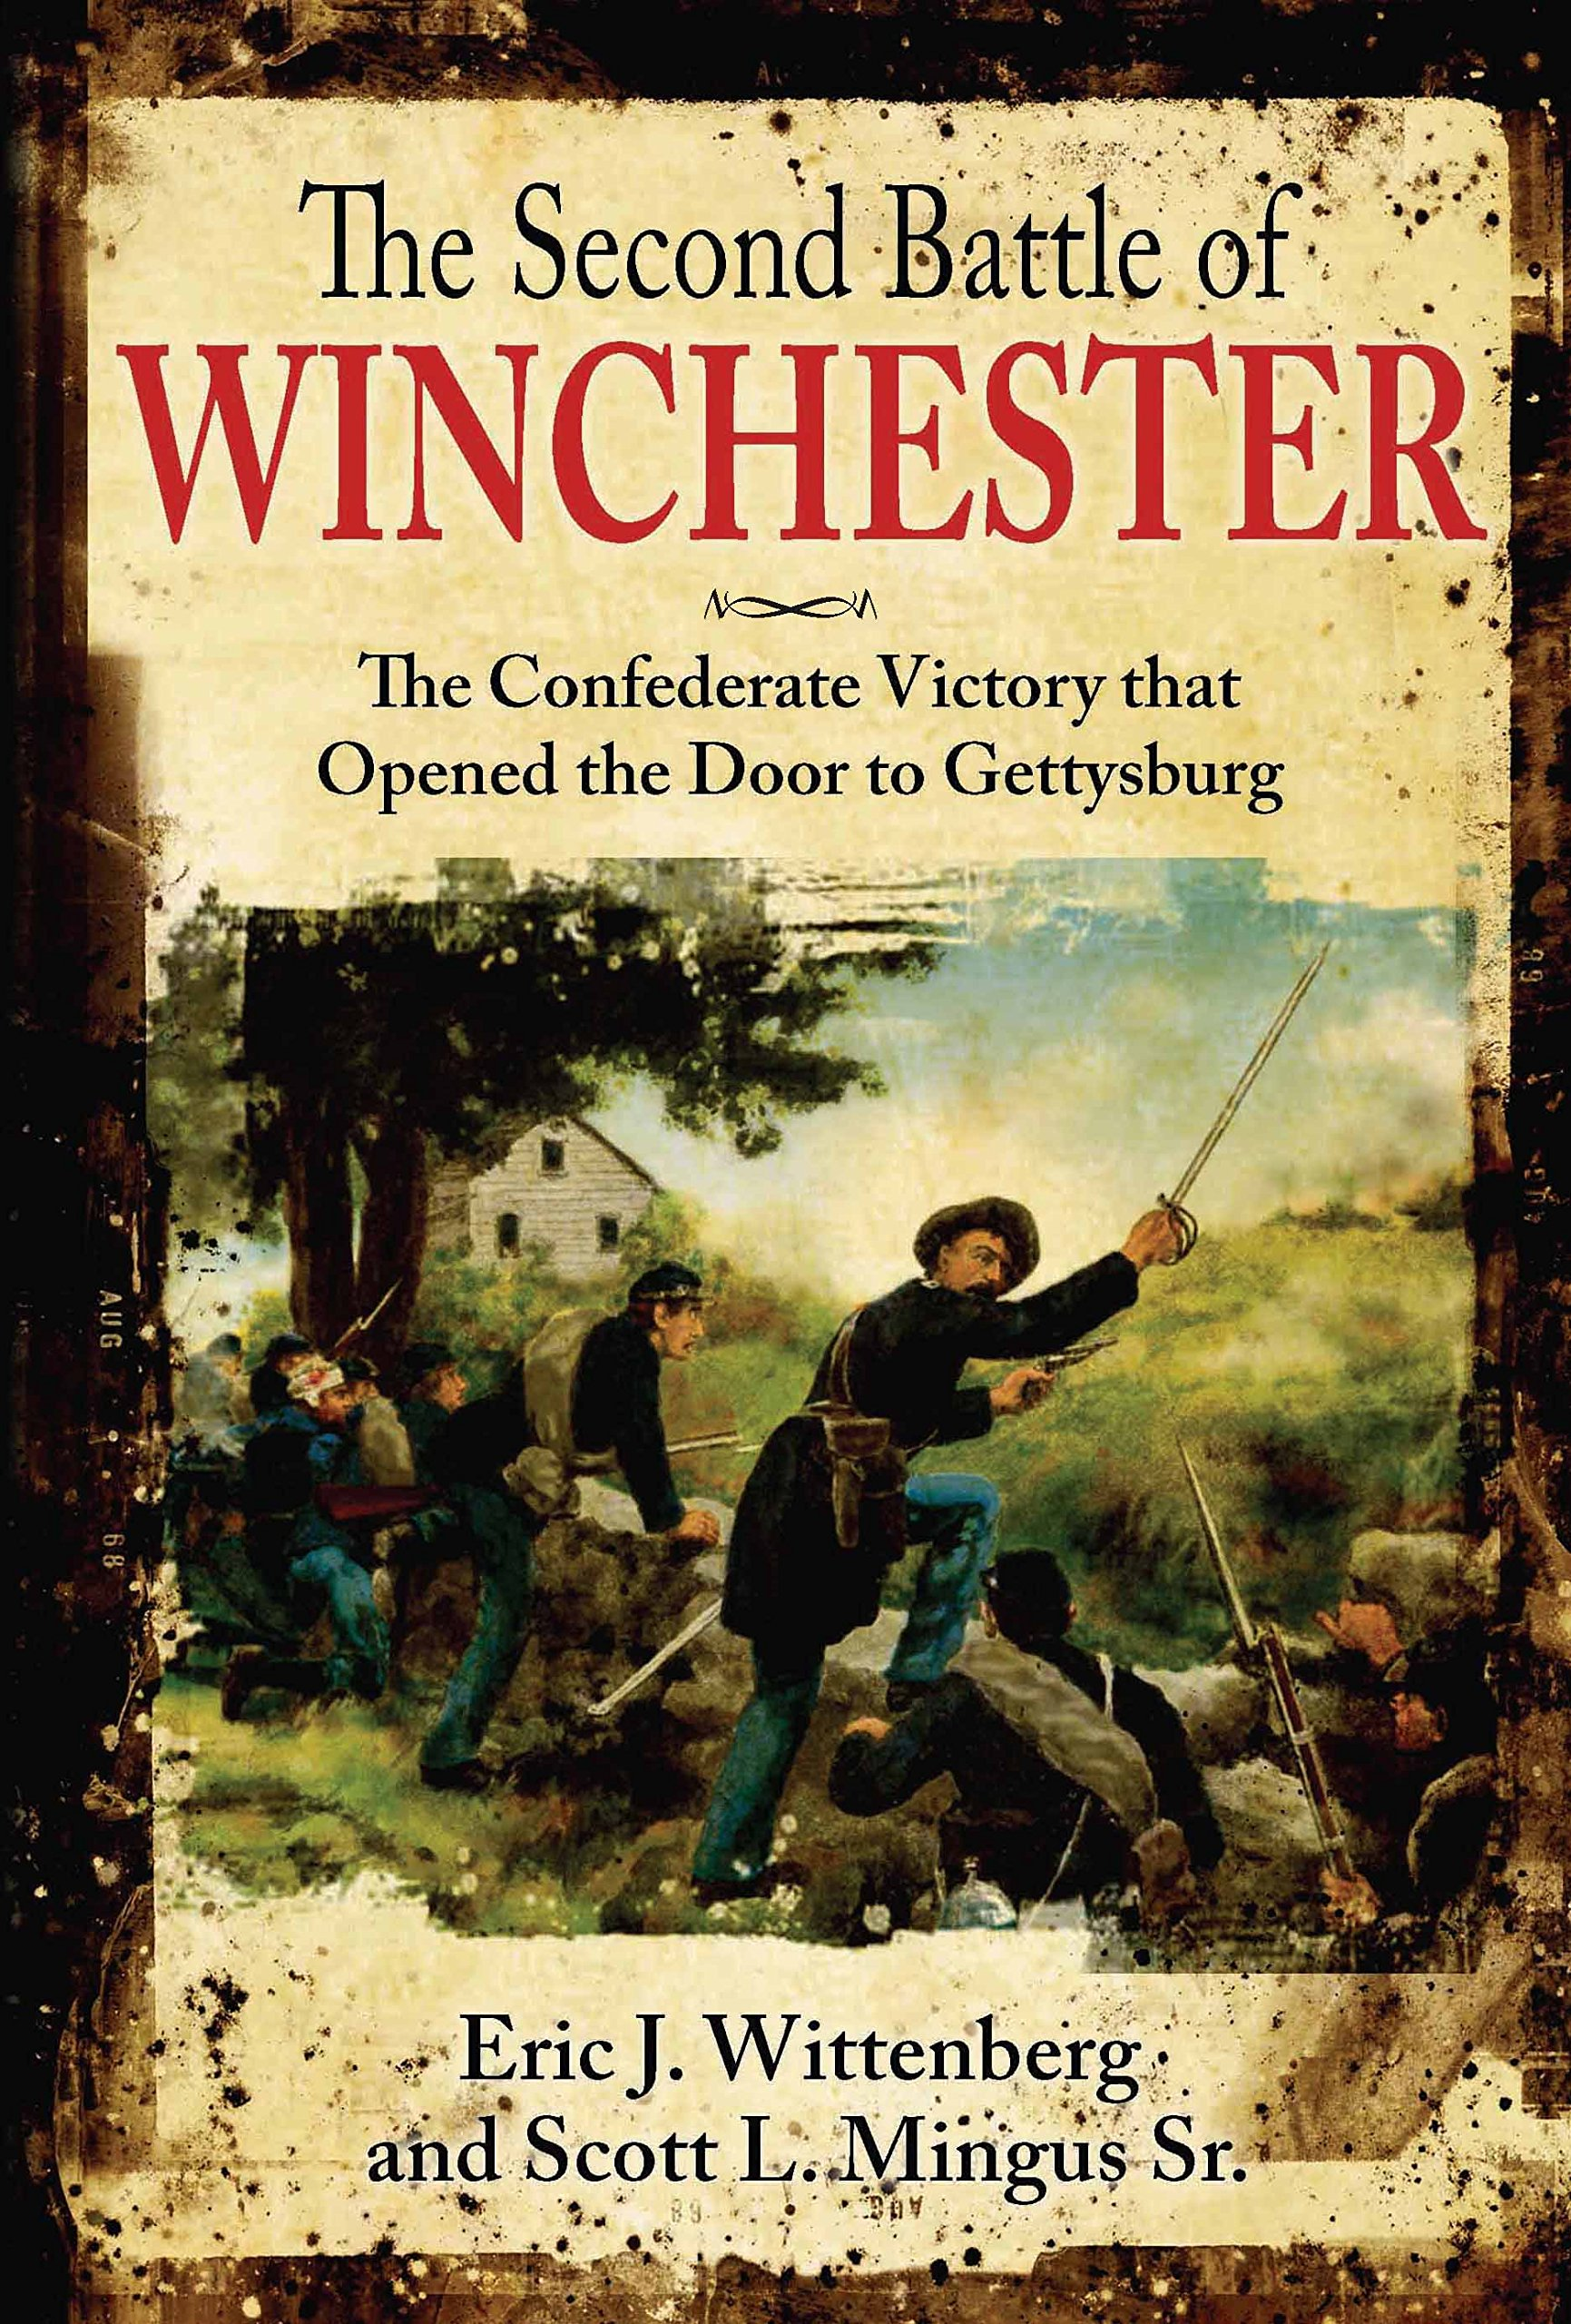 ... of Winchester: The Confederate Victory that Opened the Door to  Gettysburg: Eric J. Wittenberg, Scott L. Mingus Sr.: 9781611212884:  Amazon.com: Books